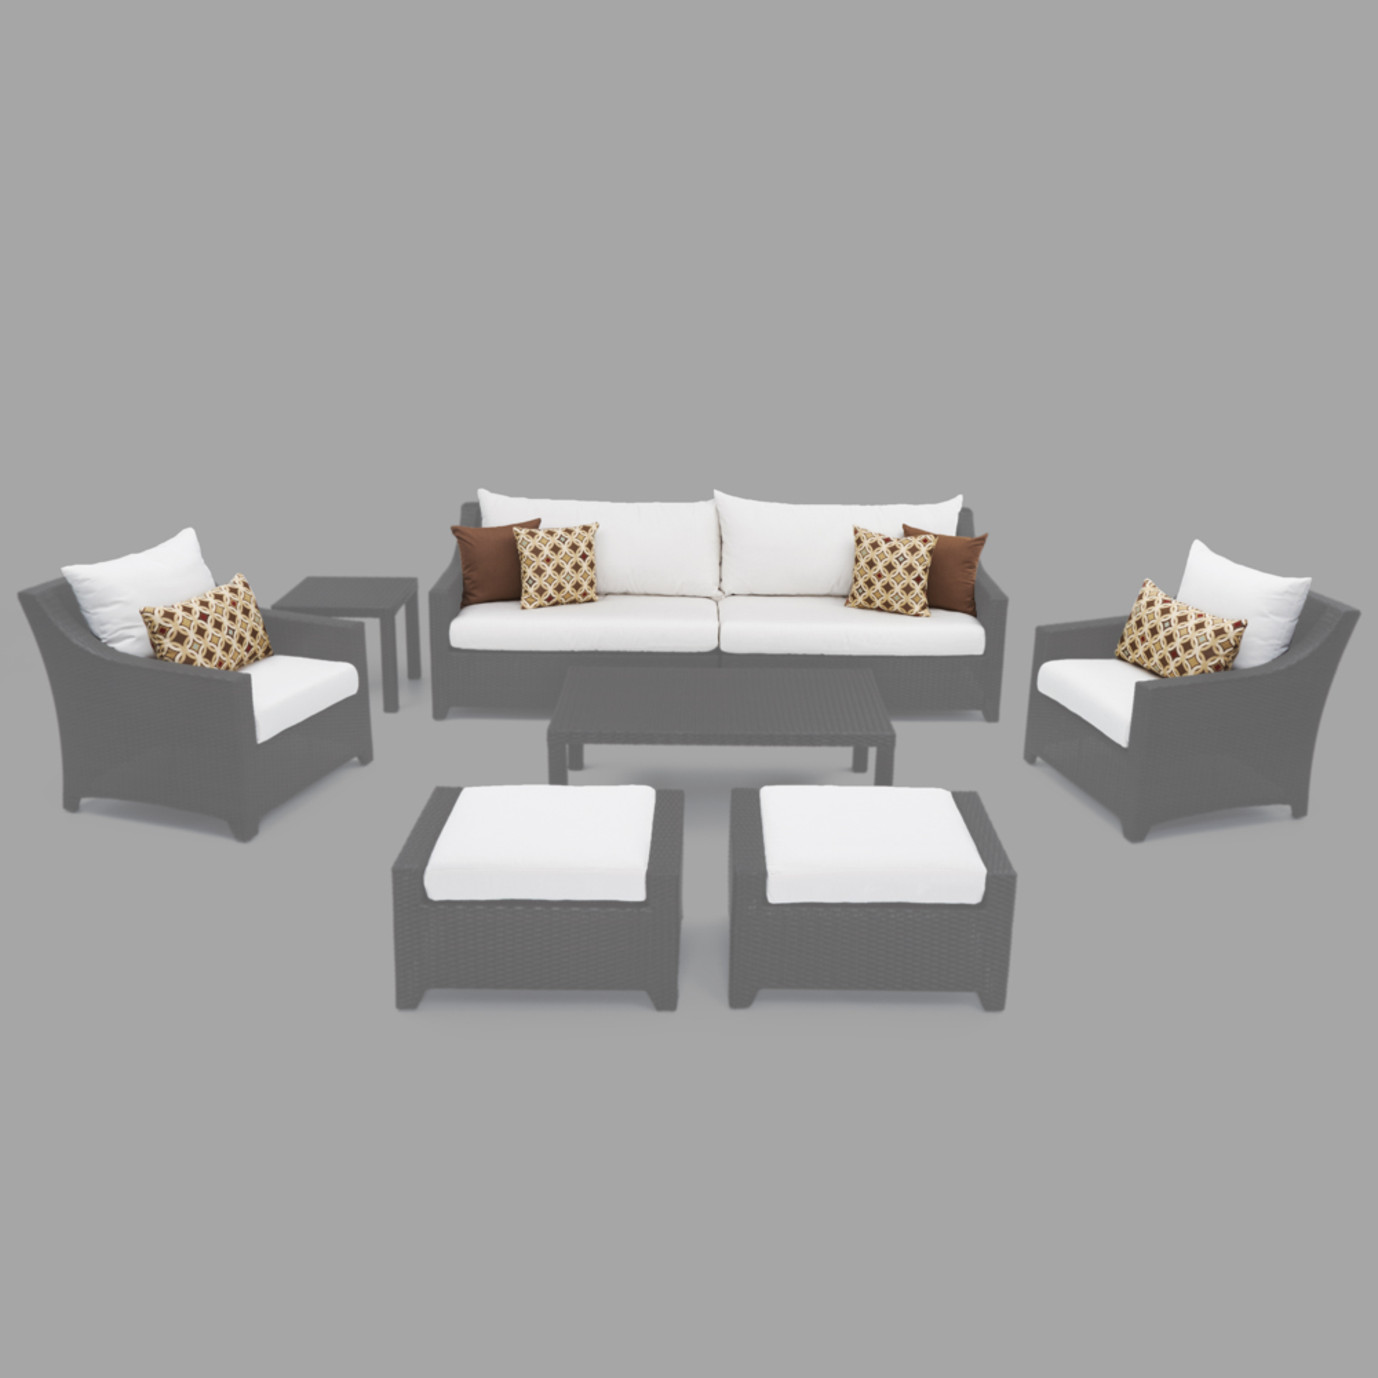 Modular Outdoor 8 Piece Club Cushion Cover Set - Moroccan Cream